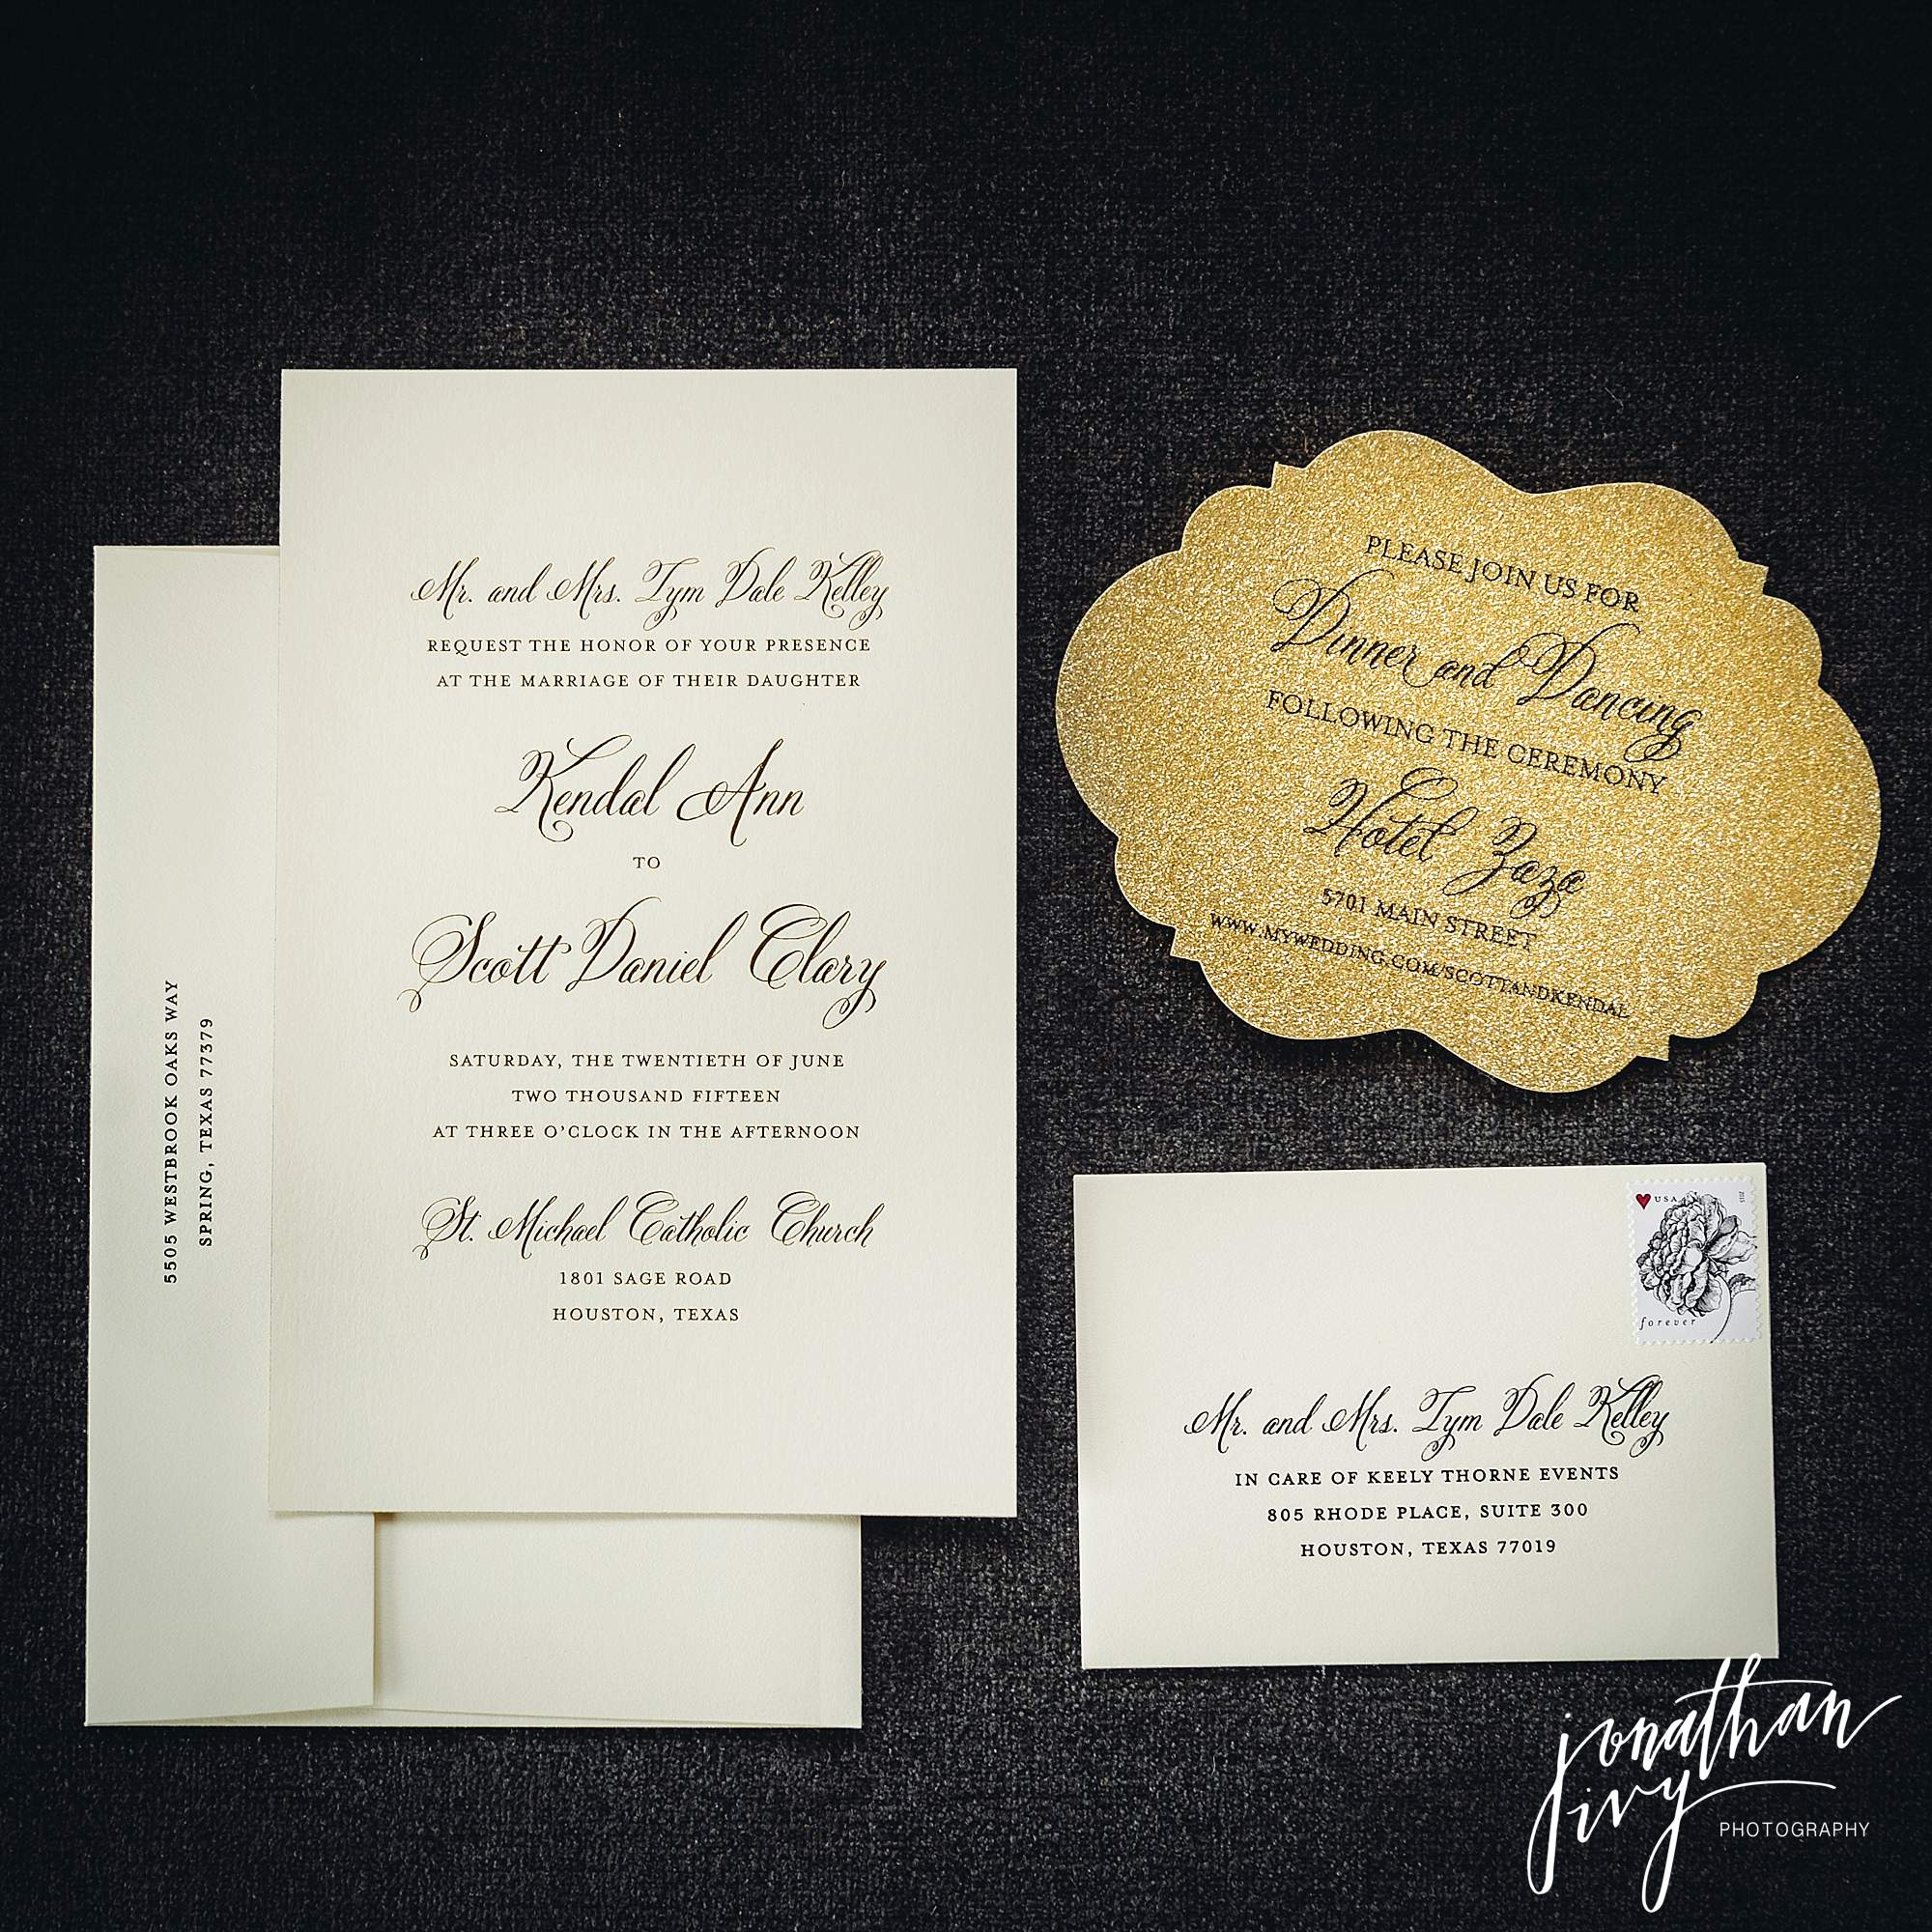 Hotel Zaza Houston Wedding - Clary Wedding - Jonathan Ivy